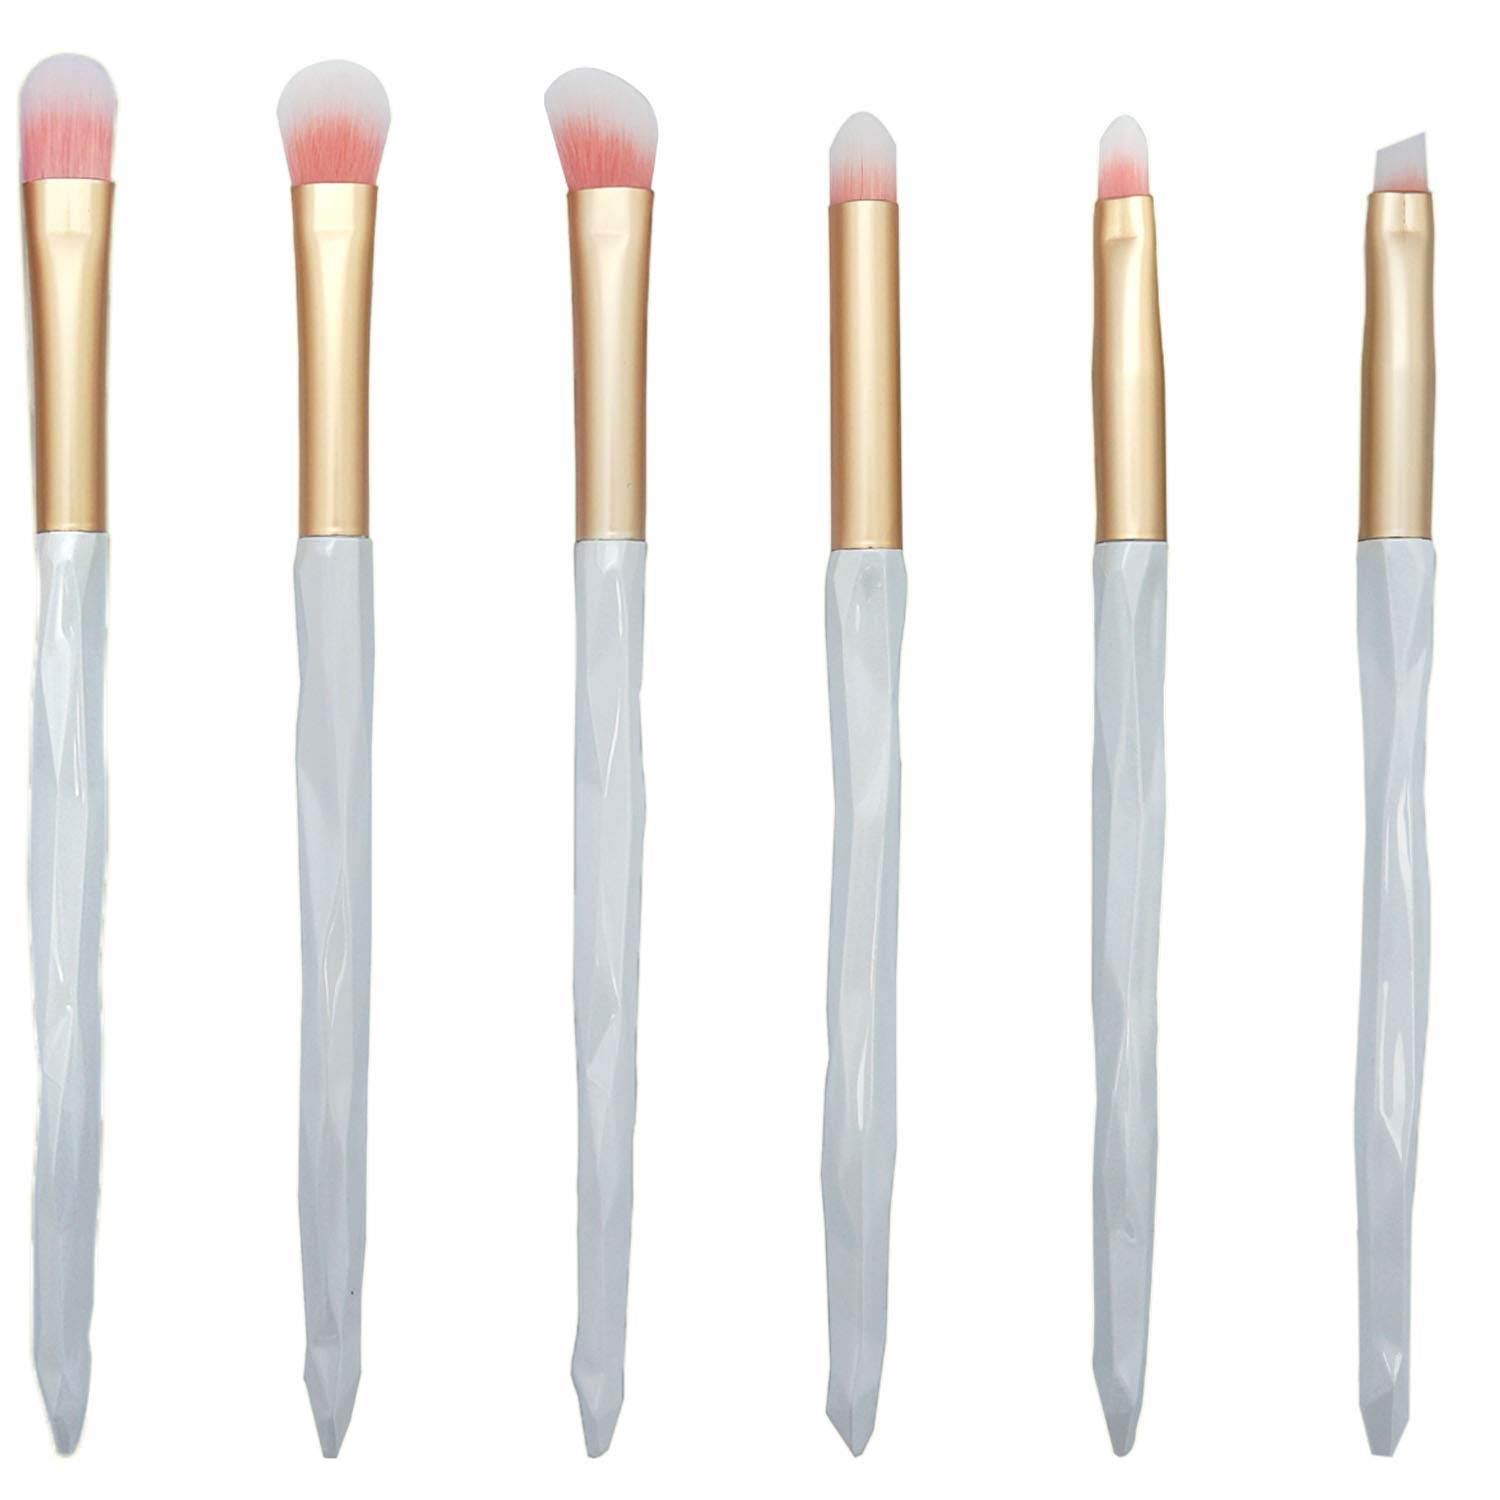 LOVCHU 9 Pieces White Professional Eye Makeup Brush Set for Eyeshadow Cream Powder with Cosmetic Bag - Perfect for Blending Eye Highlighting and Shading Cosmetics Make Up Tool